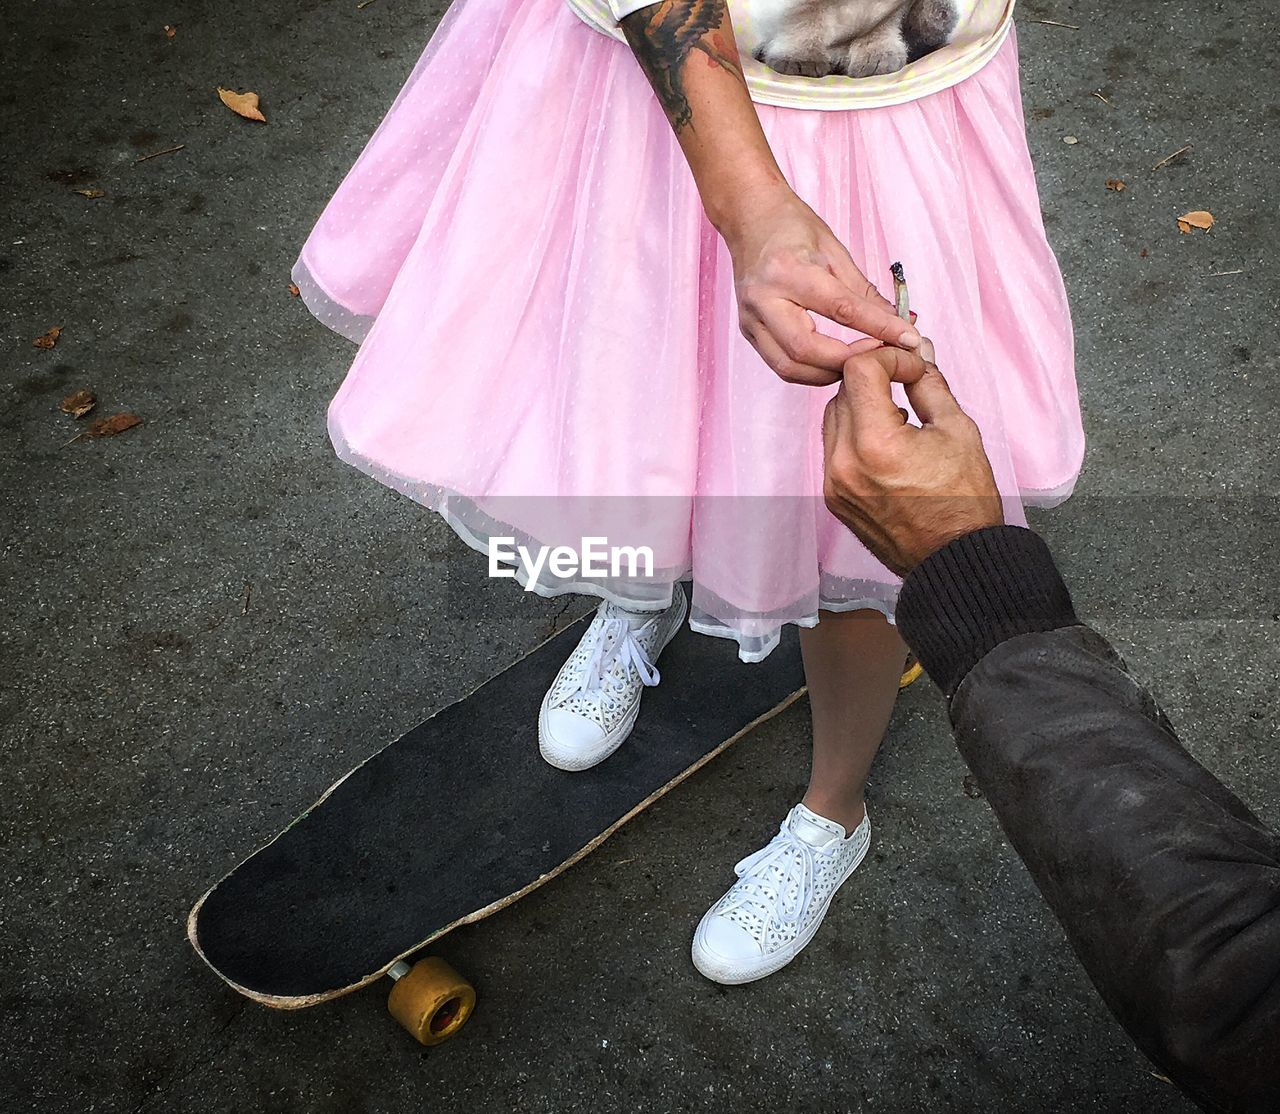 Low Section Of Woman On Skateboard Taking Joint From Man